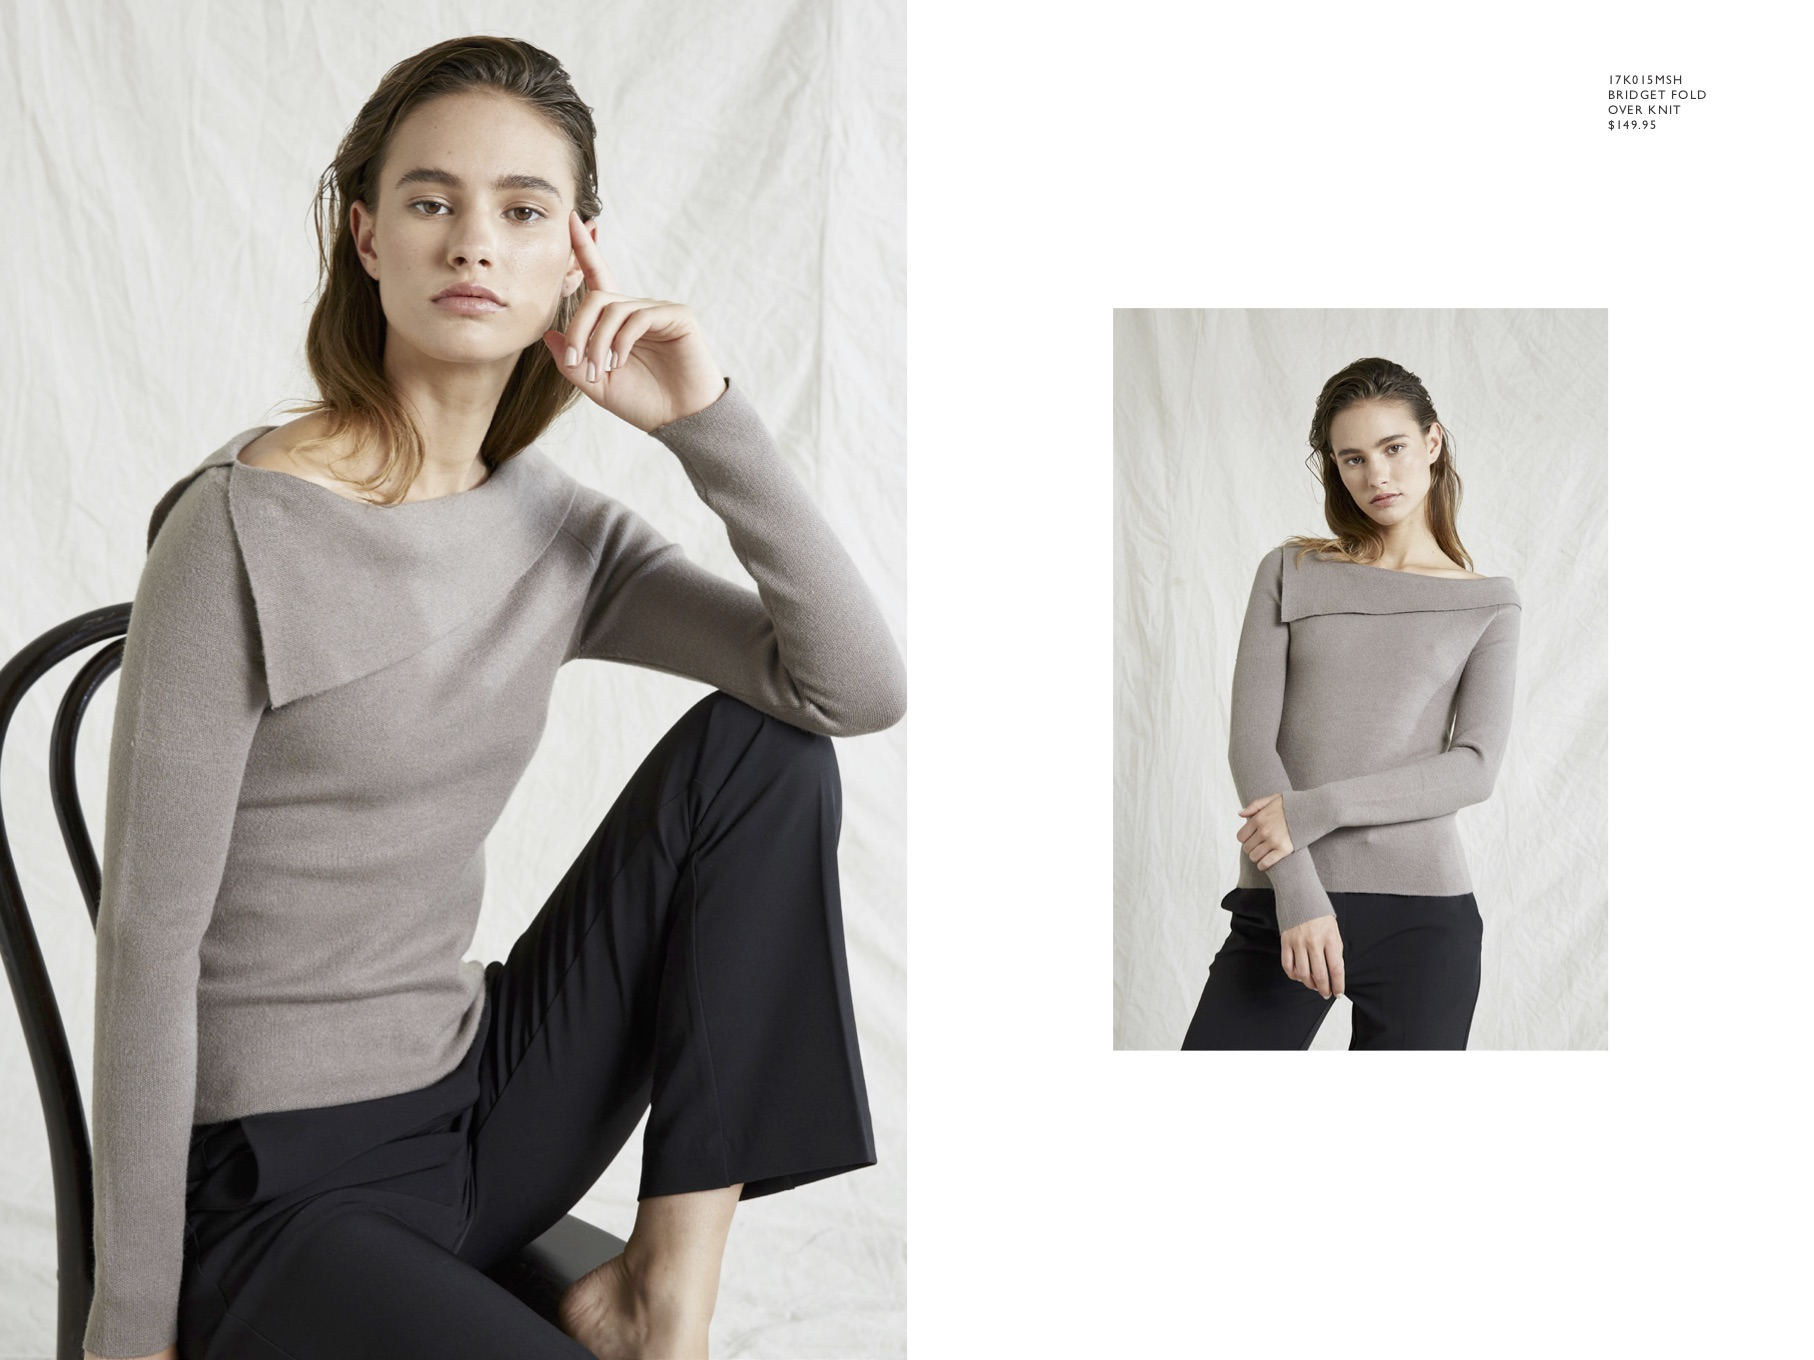 HS 17 Lookbook ipad low res (dragged) 16.jpg